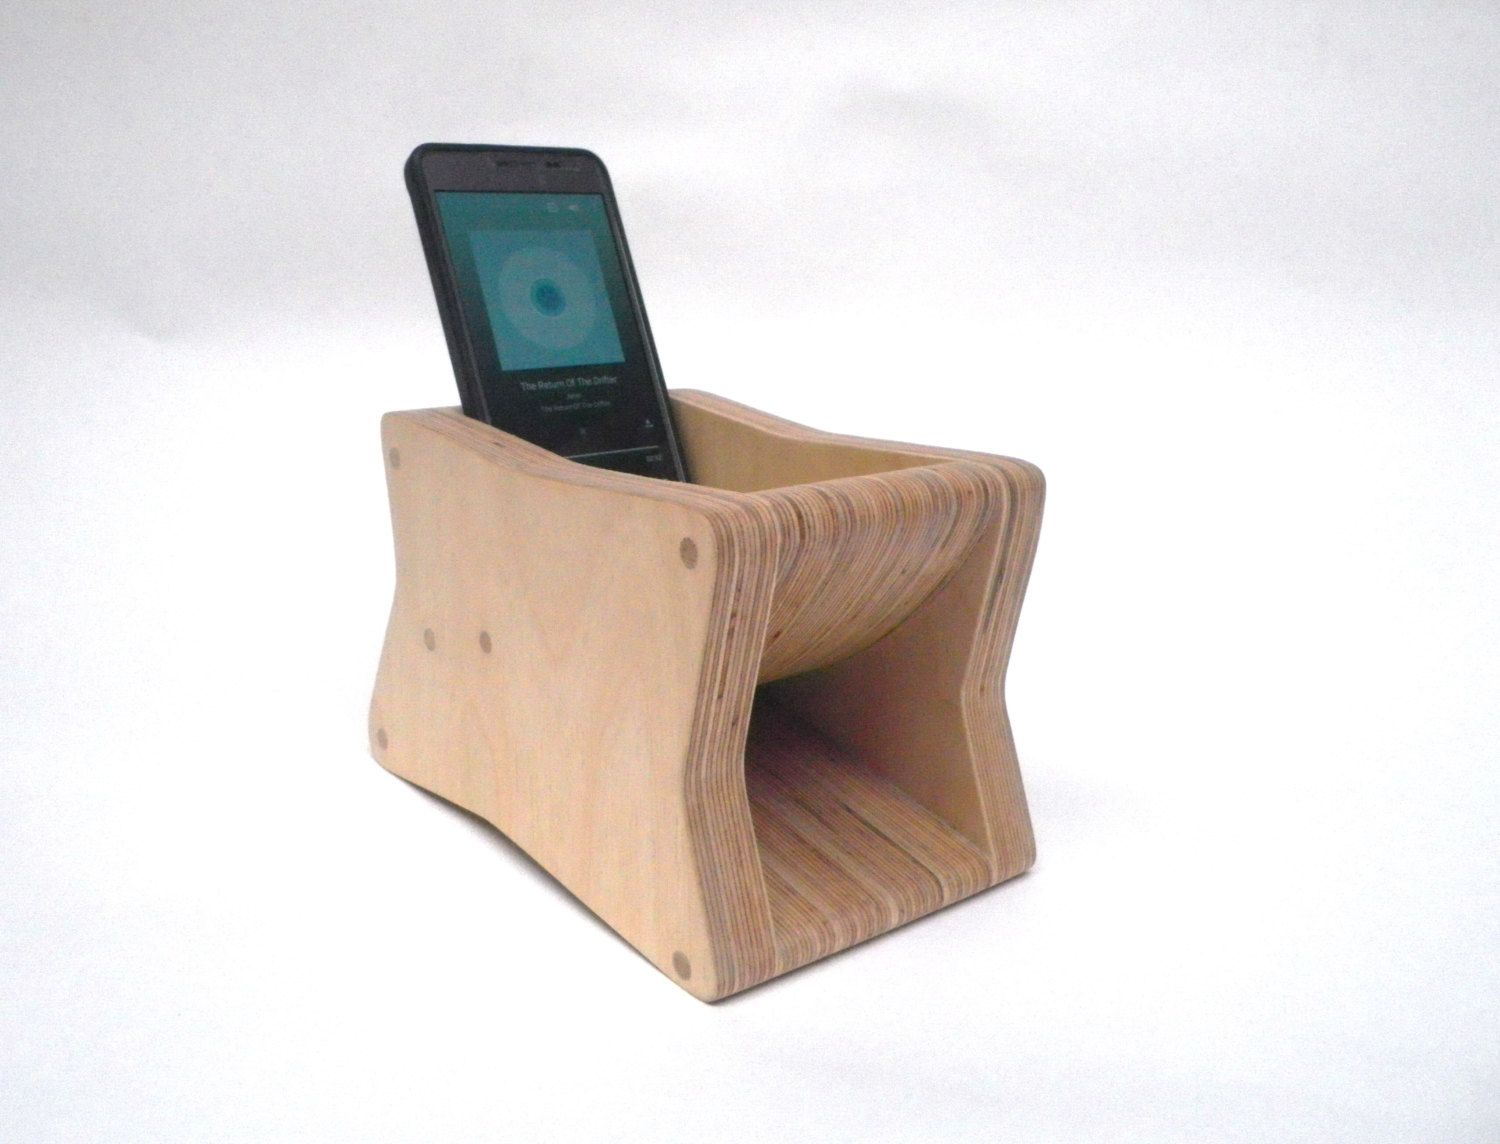 25 Diy Bunk Beds With Plans: Passive Mobile Phone Amplifier